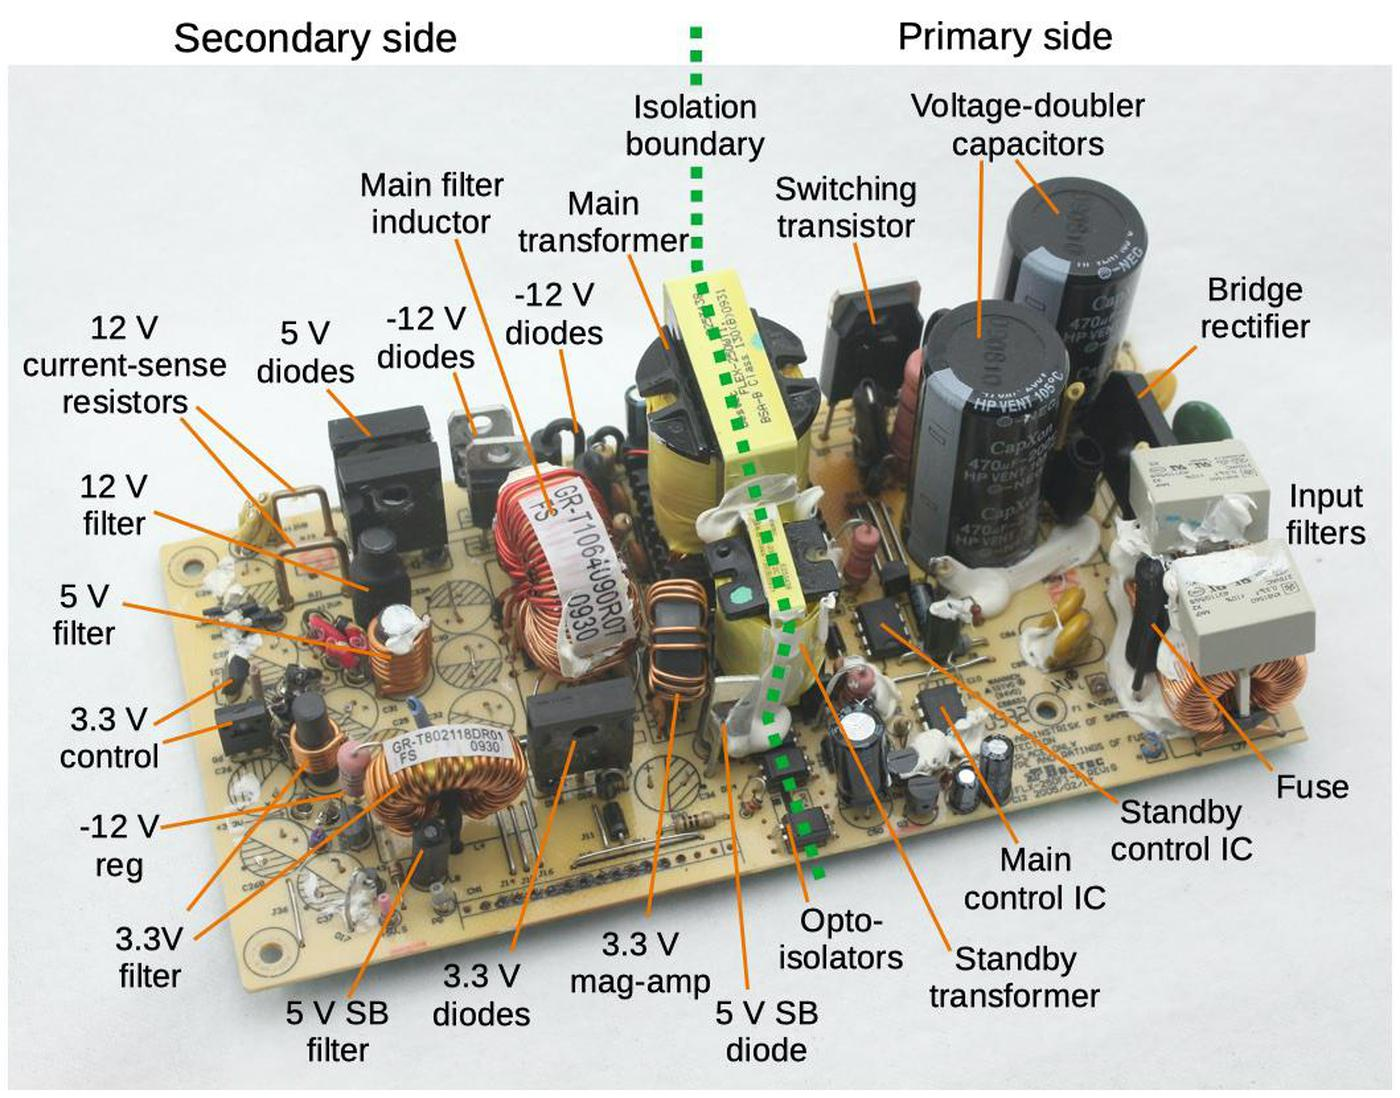 The power supply with main features labeled. The heat sinks, capacitors, control board, and output wires have been removed to give a better view. (SB indicates the standby supply.)